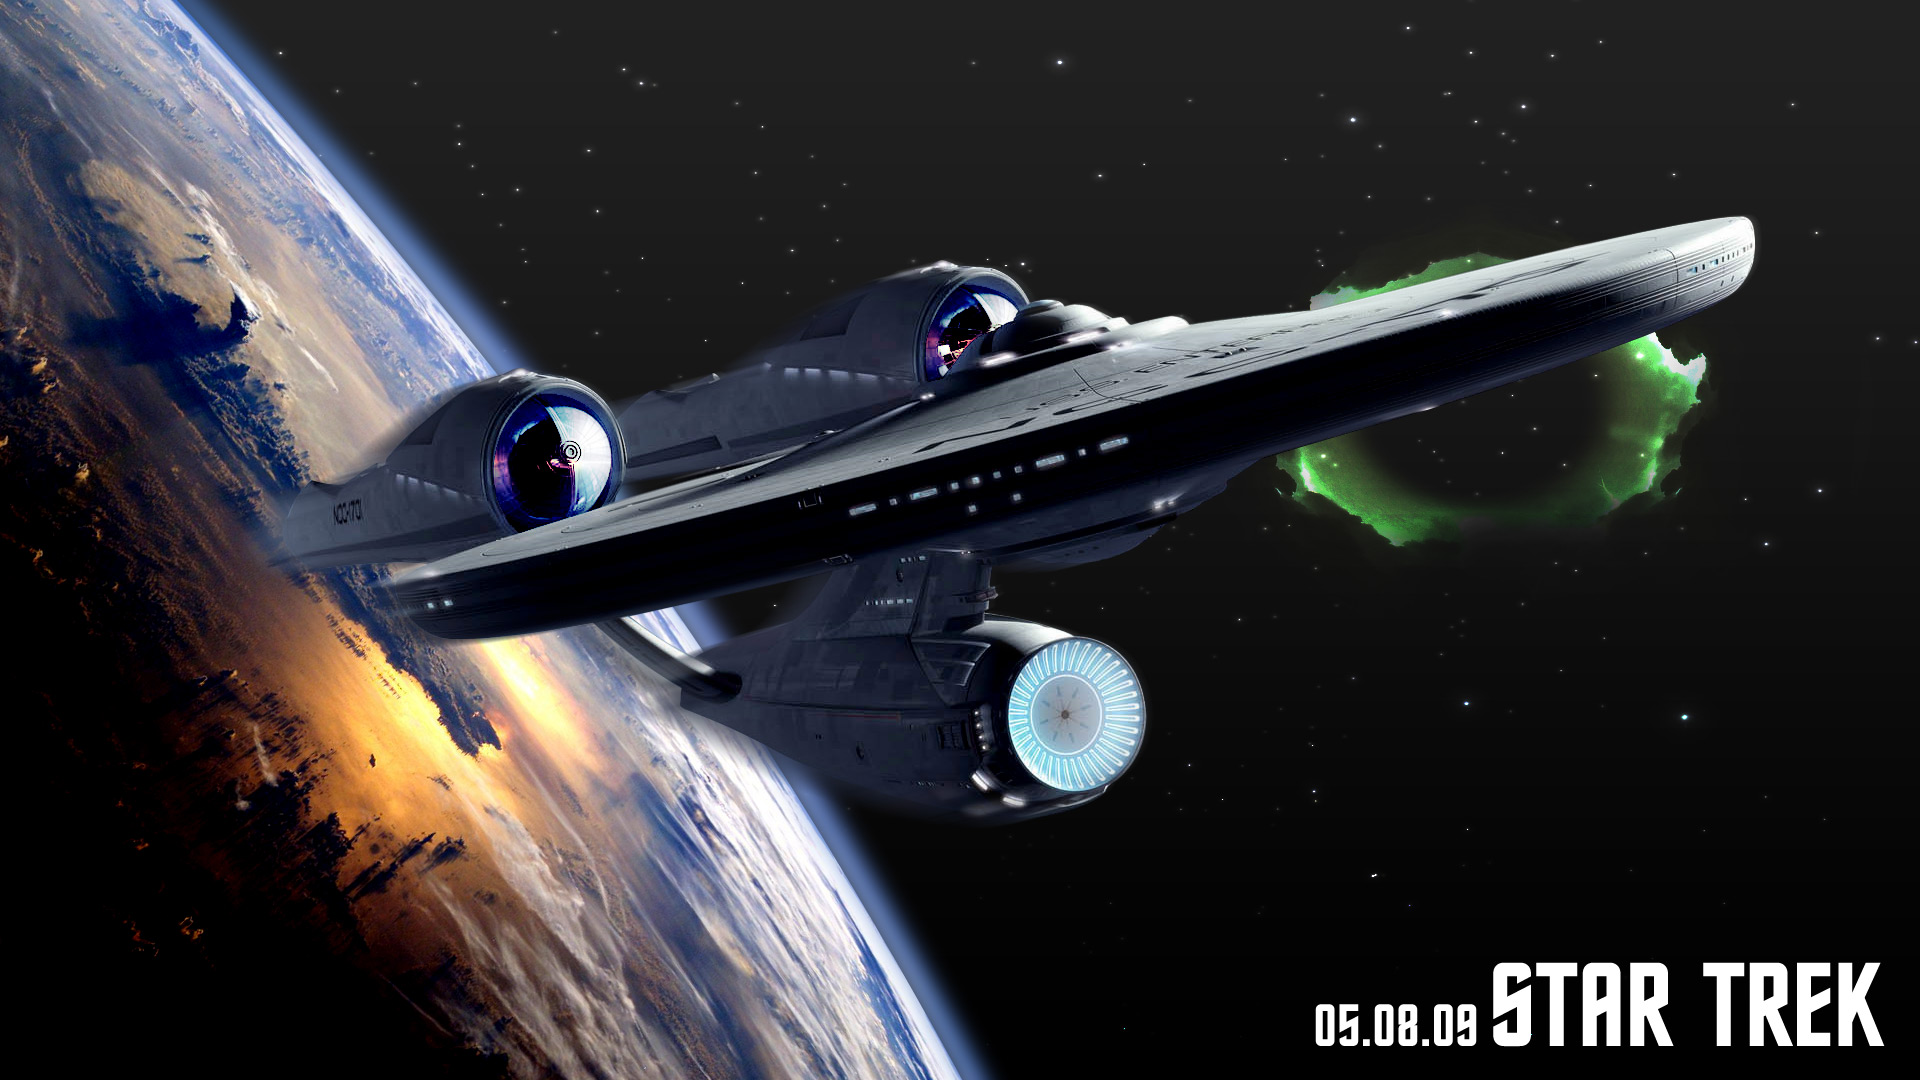 HD Wallpaper Star Trek